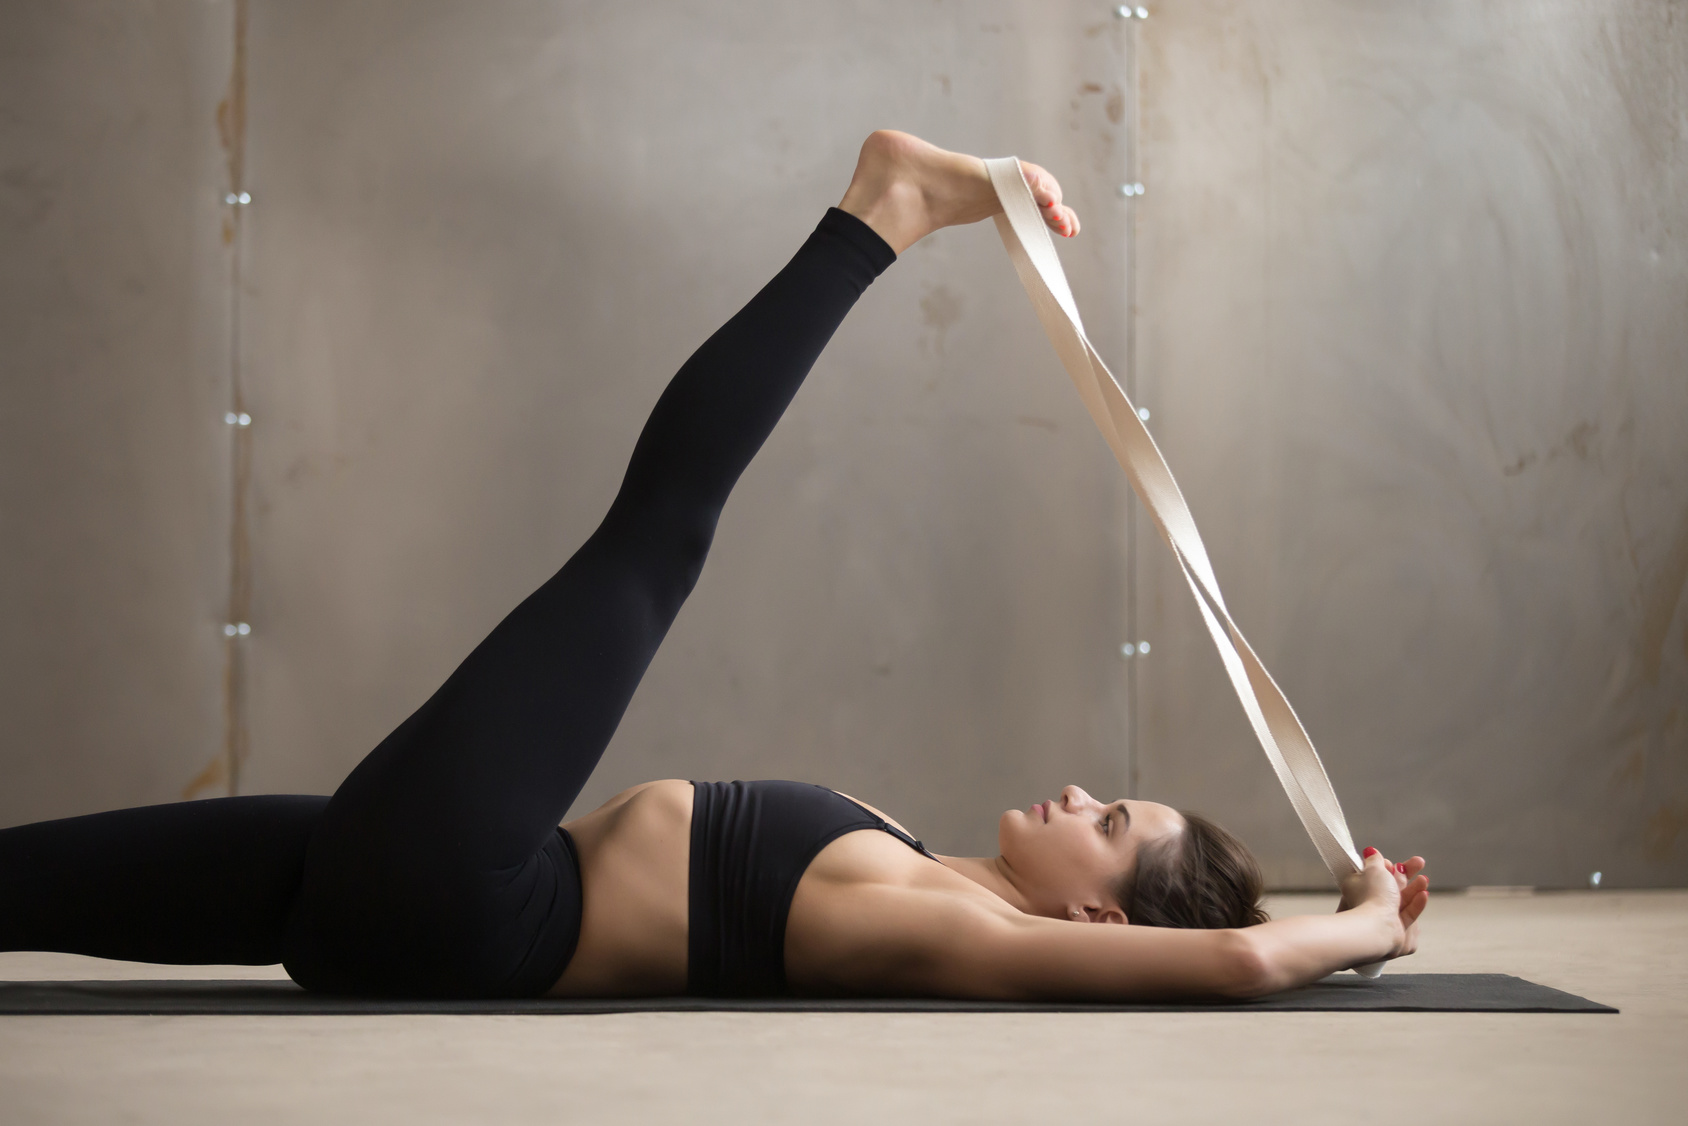 woman practicing yoga supta padangustasana, reclining hand to big toe pose with prop strap motidification